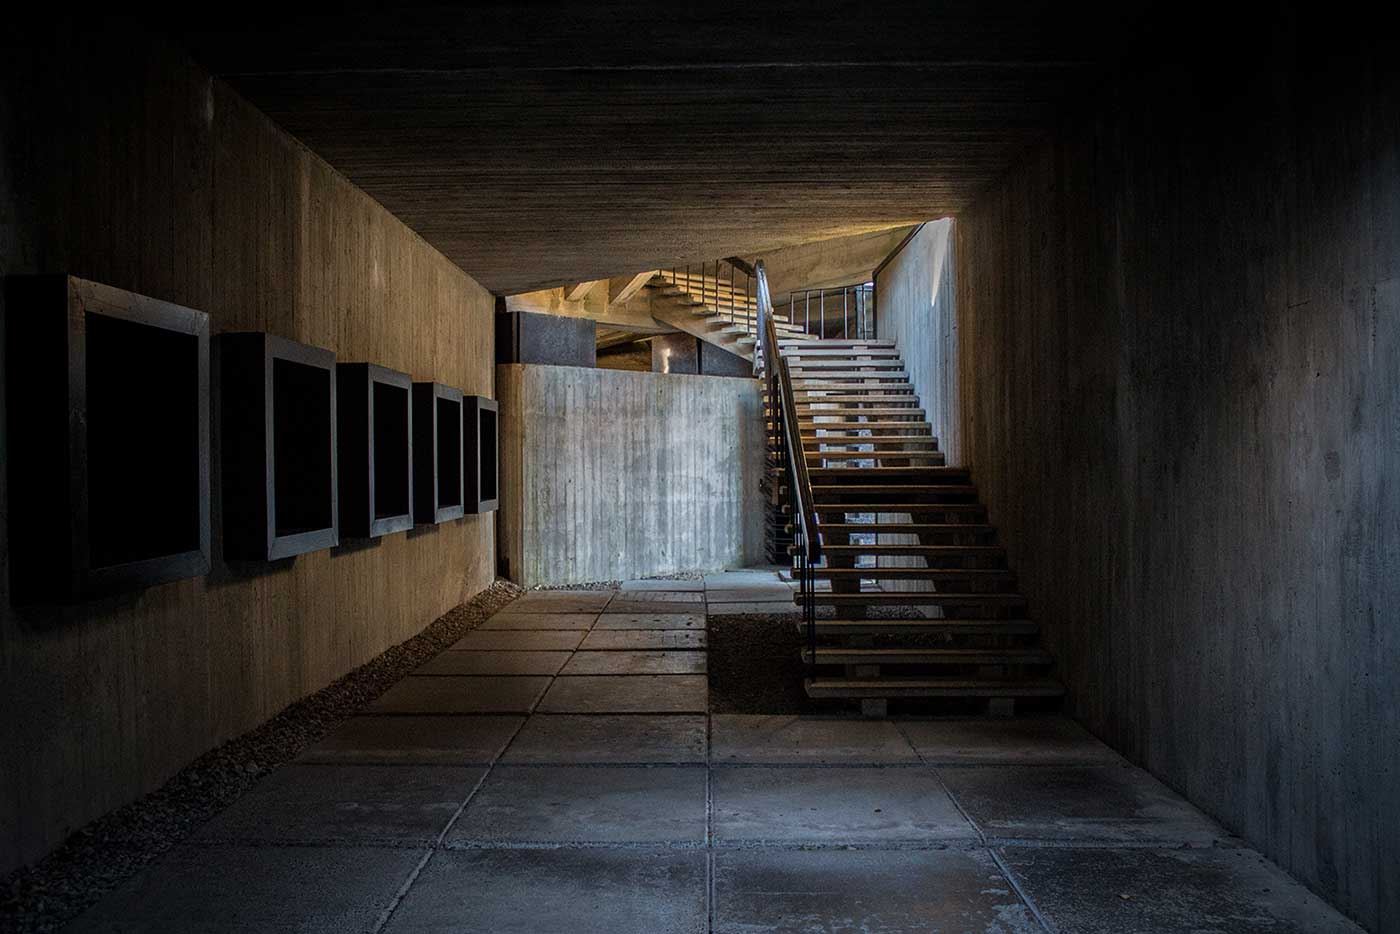 The main gallery space inside the visitors' building. Salaspils Memorial, Latvia.